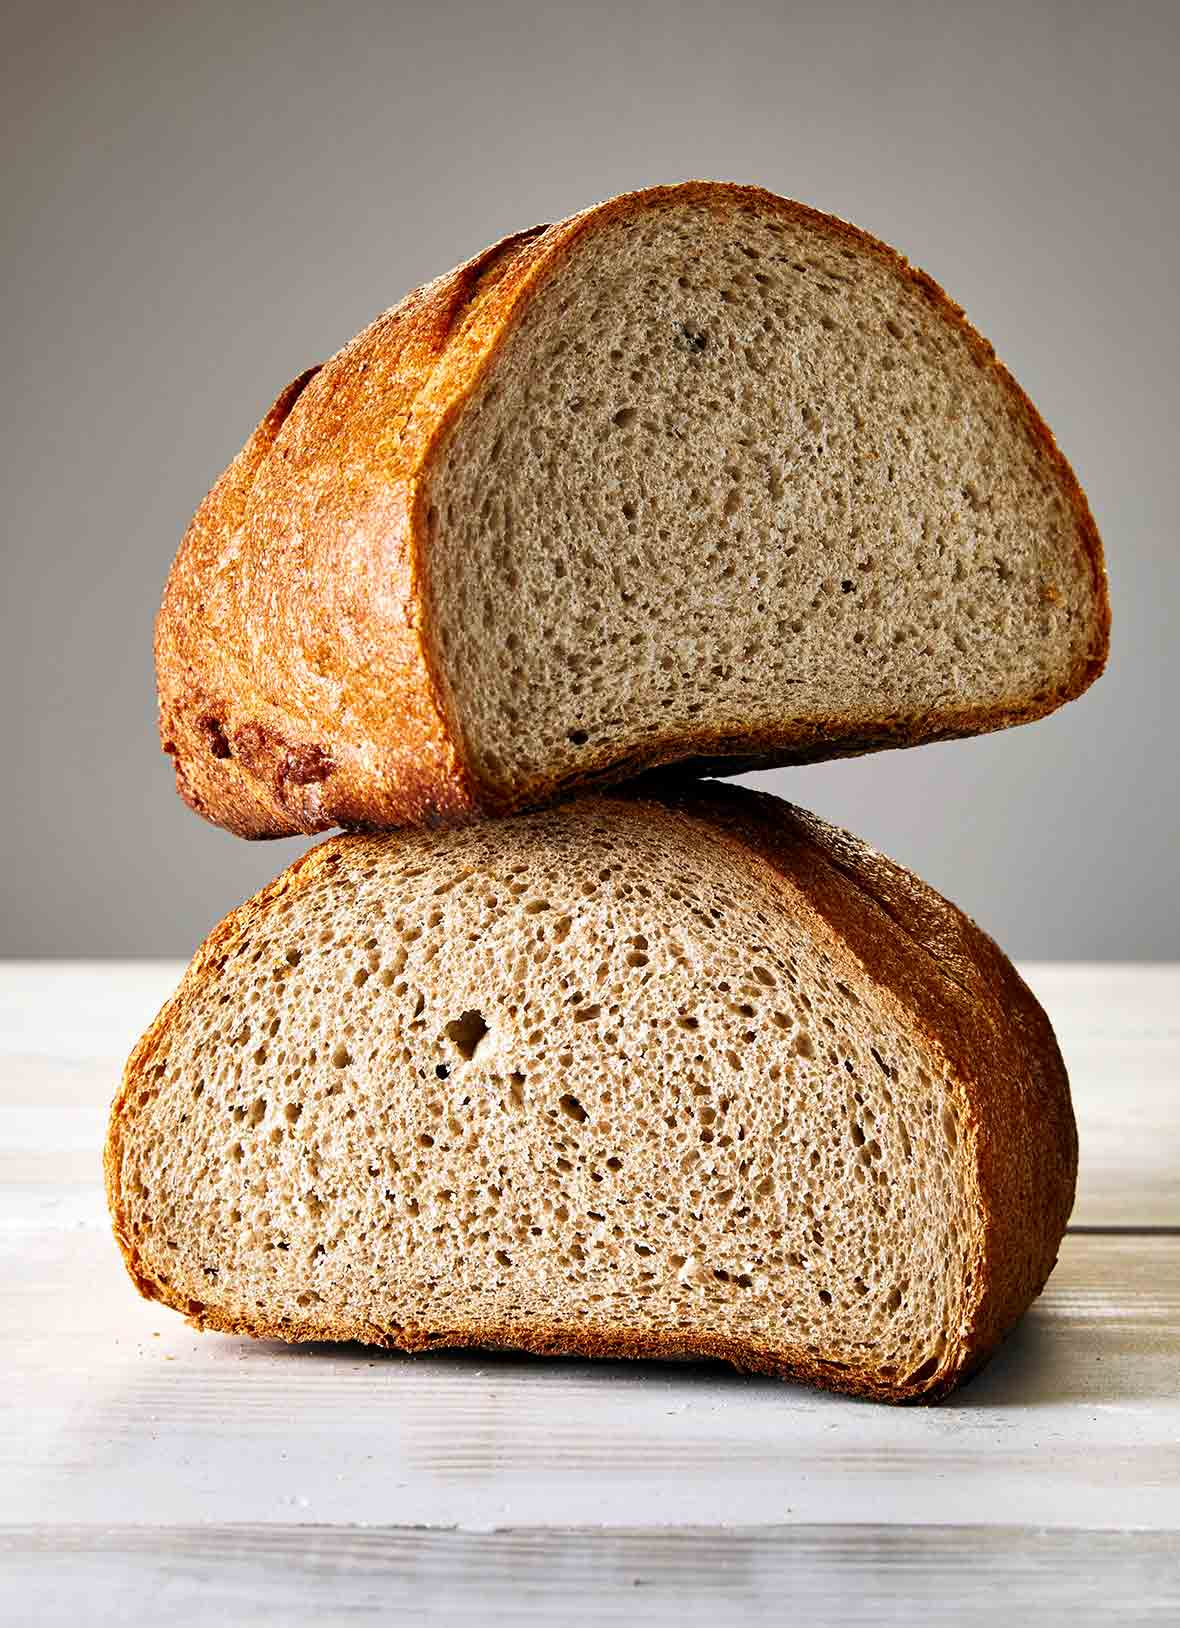 A loaf of Jewish rye bread, cur in half, one half balancing on the other